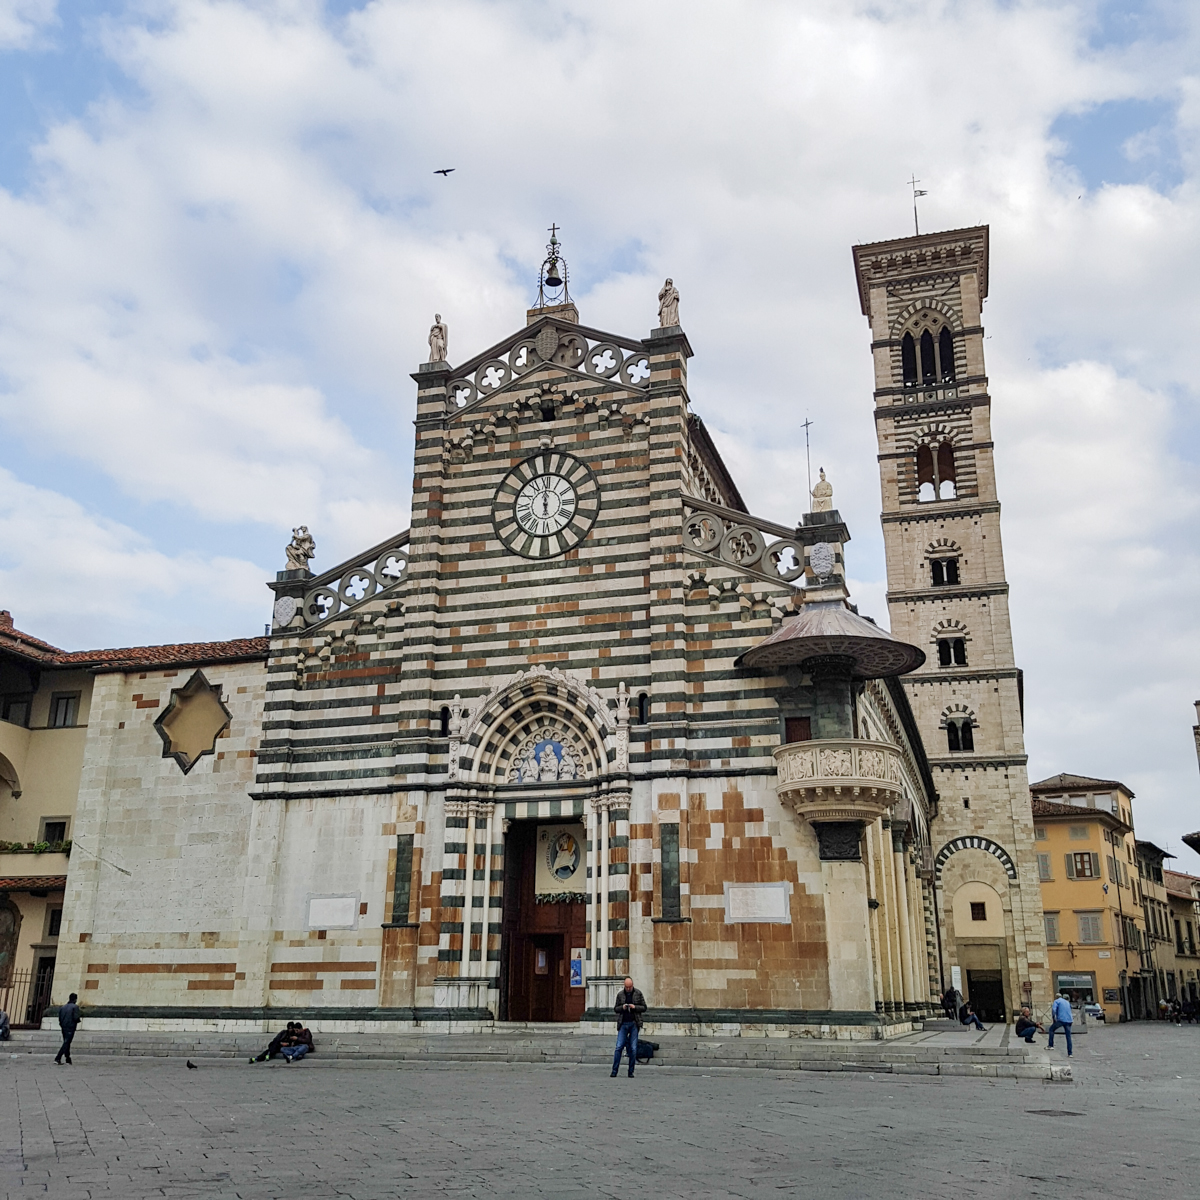 Prato-by-Style-and-Trouble-005-Duomo